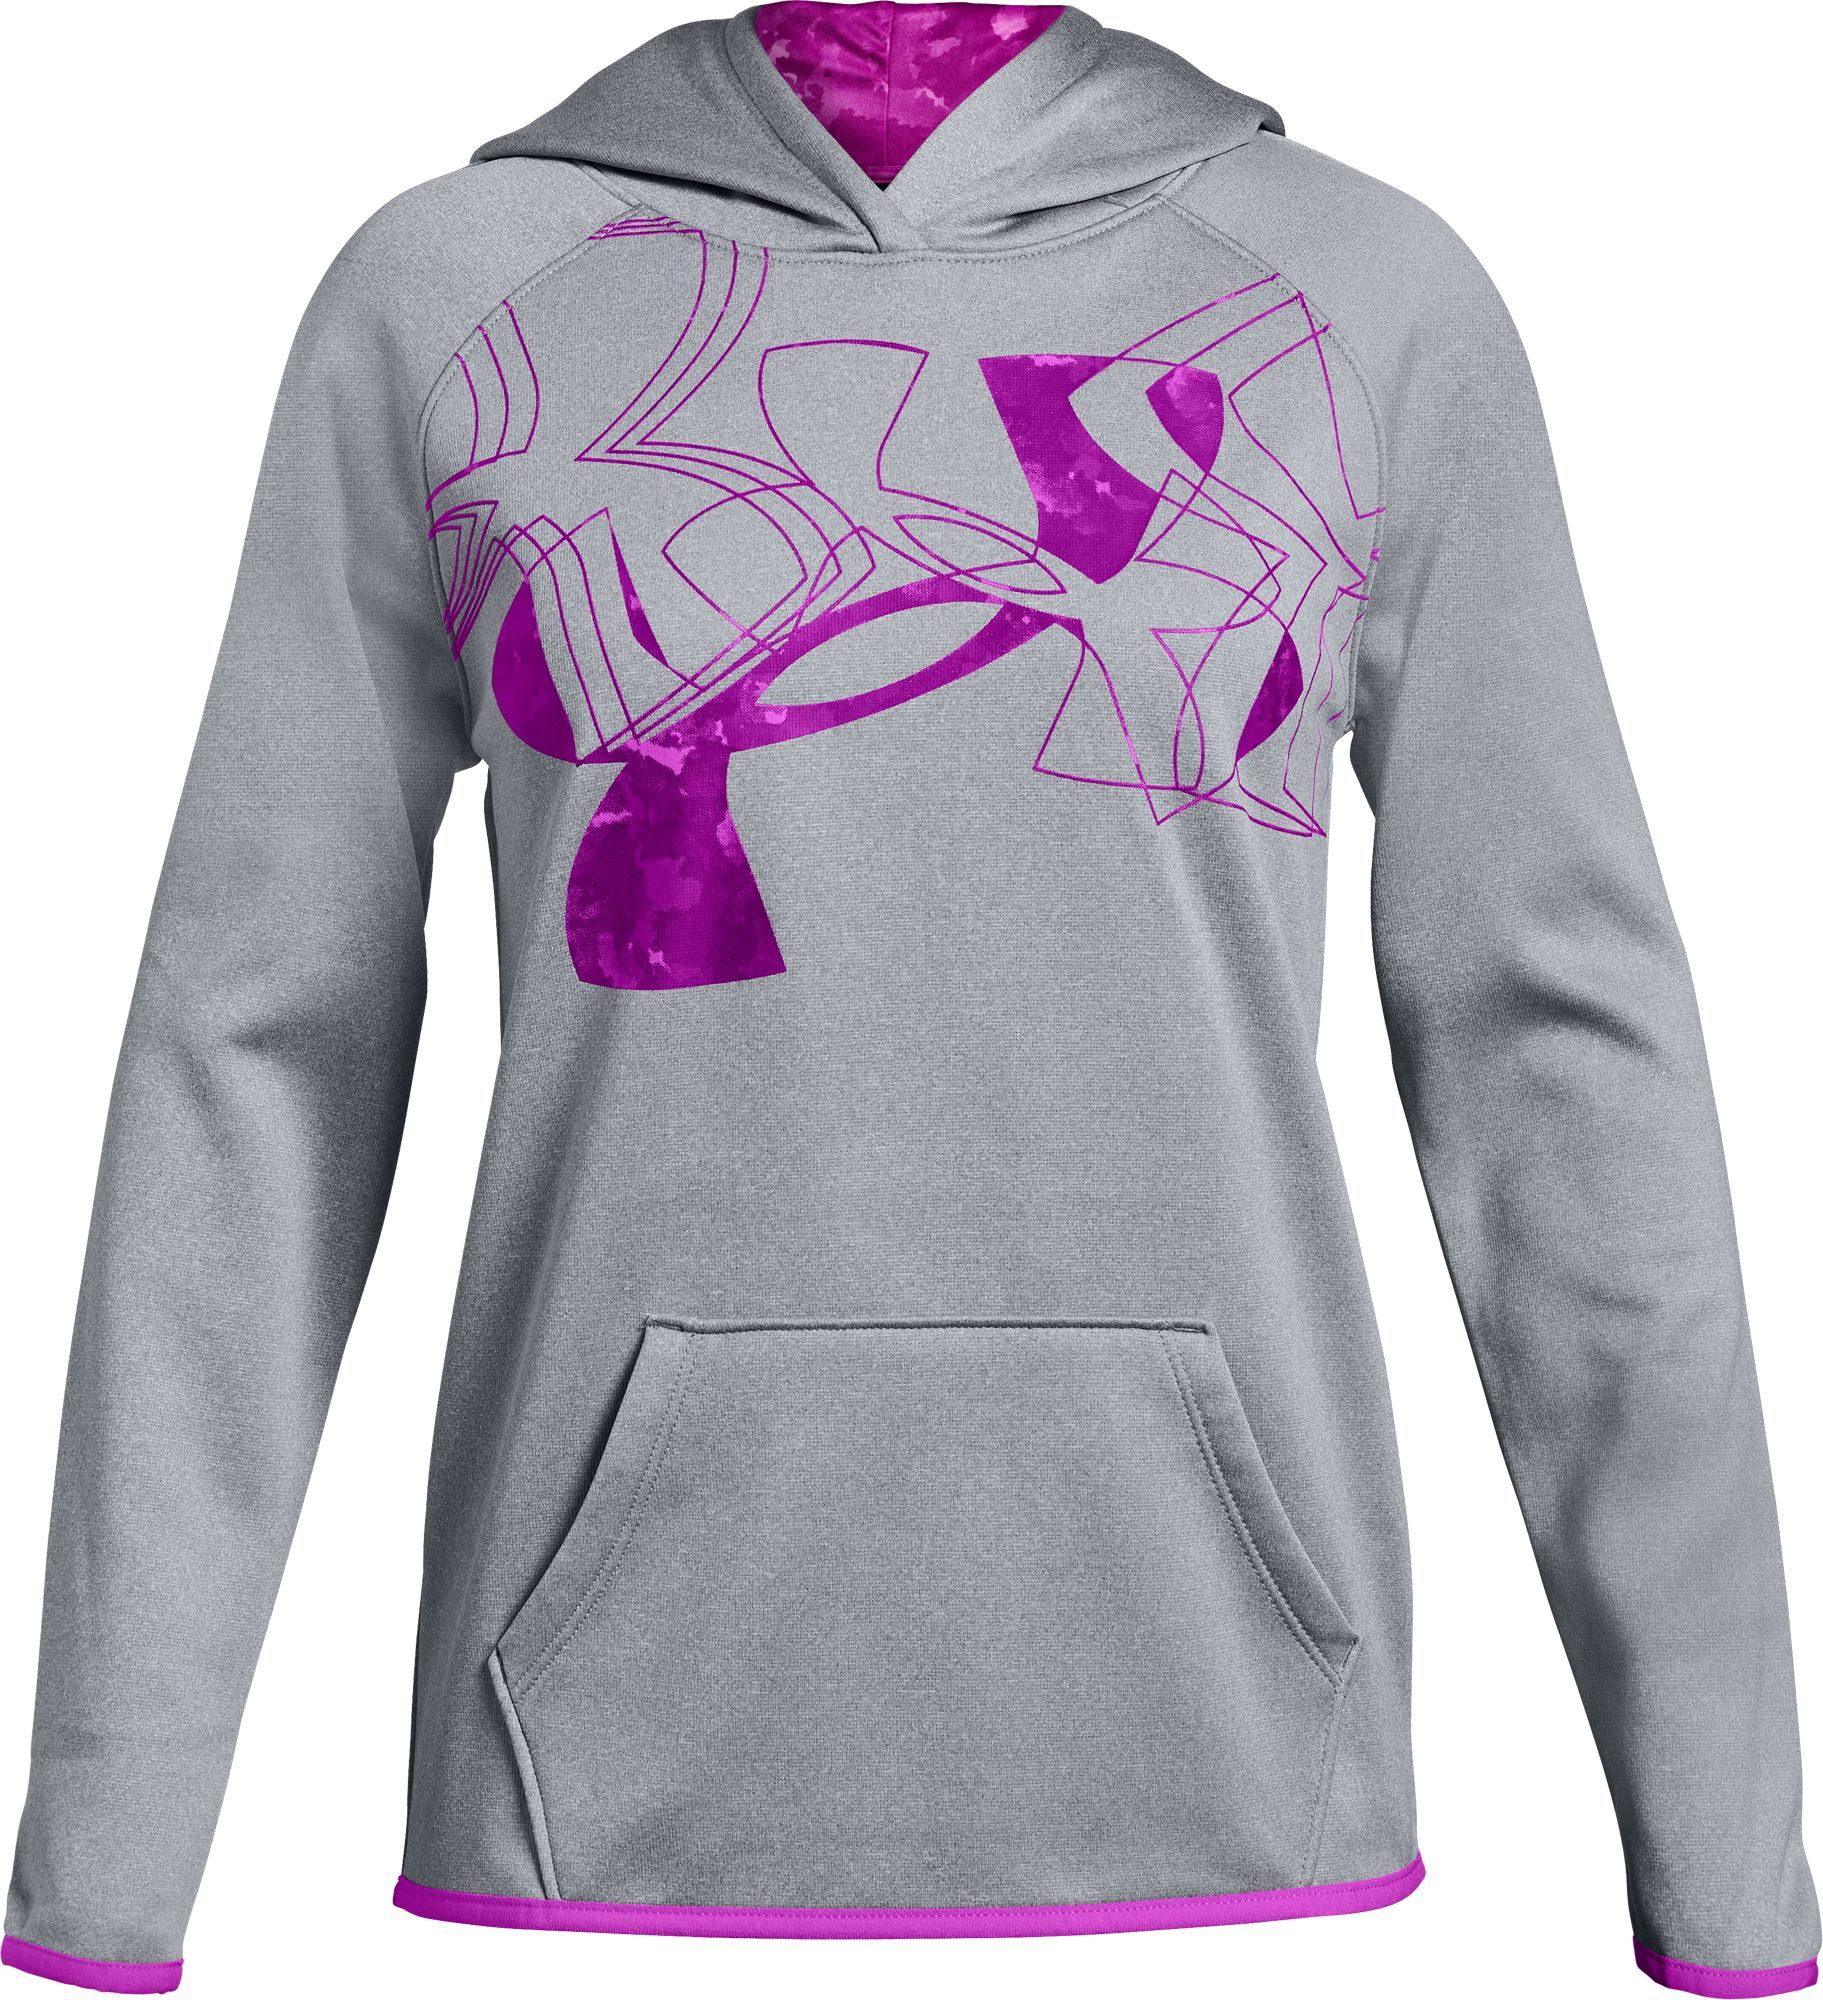 1969bad6 Under Armour Girls' Armour Fleece Print Filled Logo Hoodie, Size ...